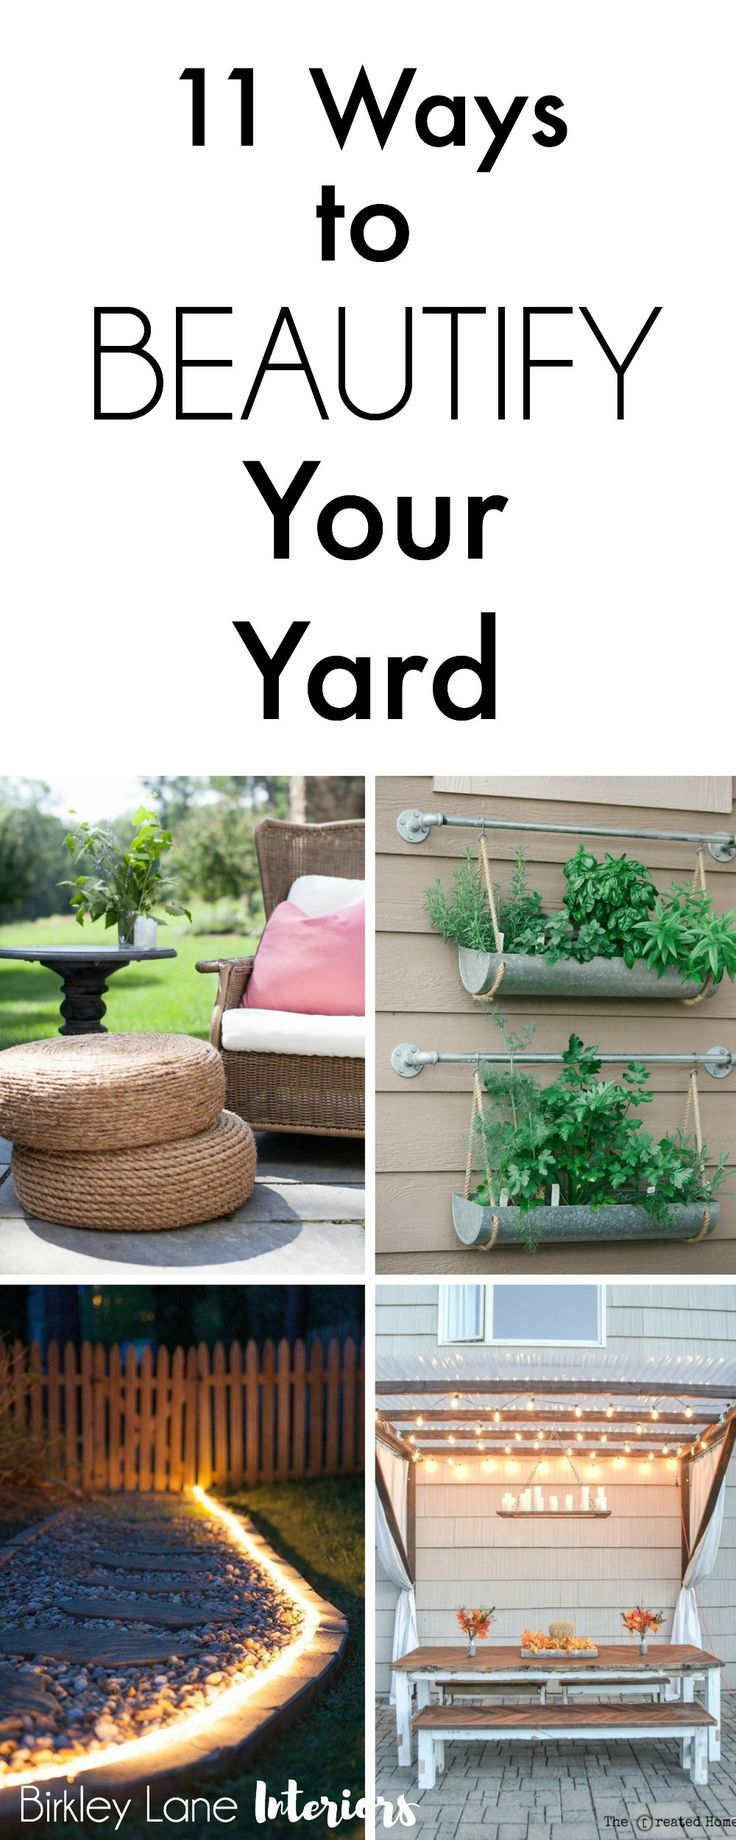 Are you ready for warmer weather? That means time spent outside! Click here for 11 amazing outside decor ideas and beautify your yard! Outdoor decor, outdoor decor ideas, outdoor patio ideas, outside decor, porch decorating, decorate outside of house fron